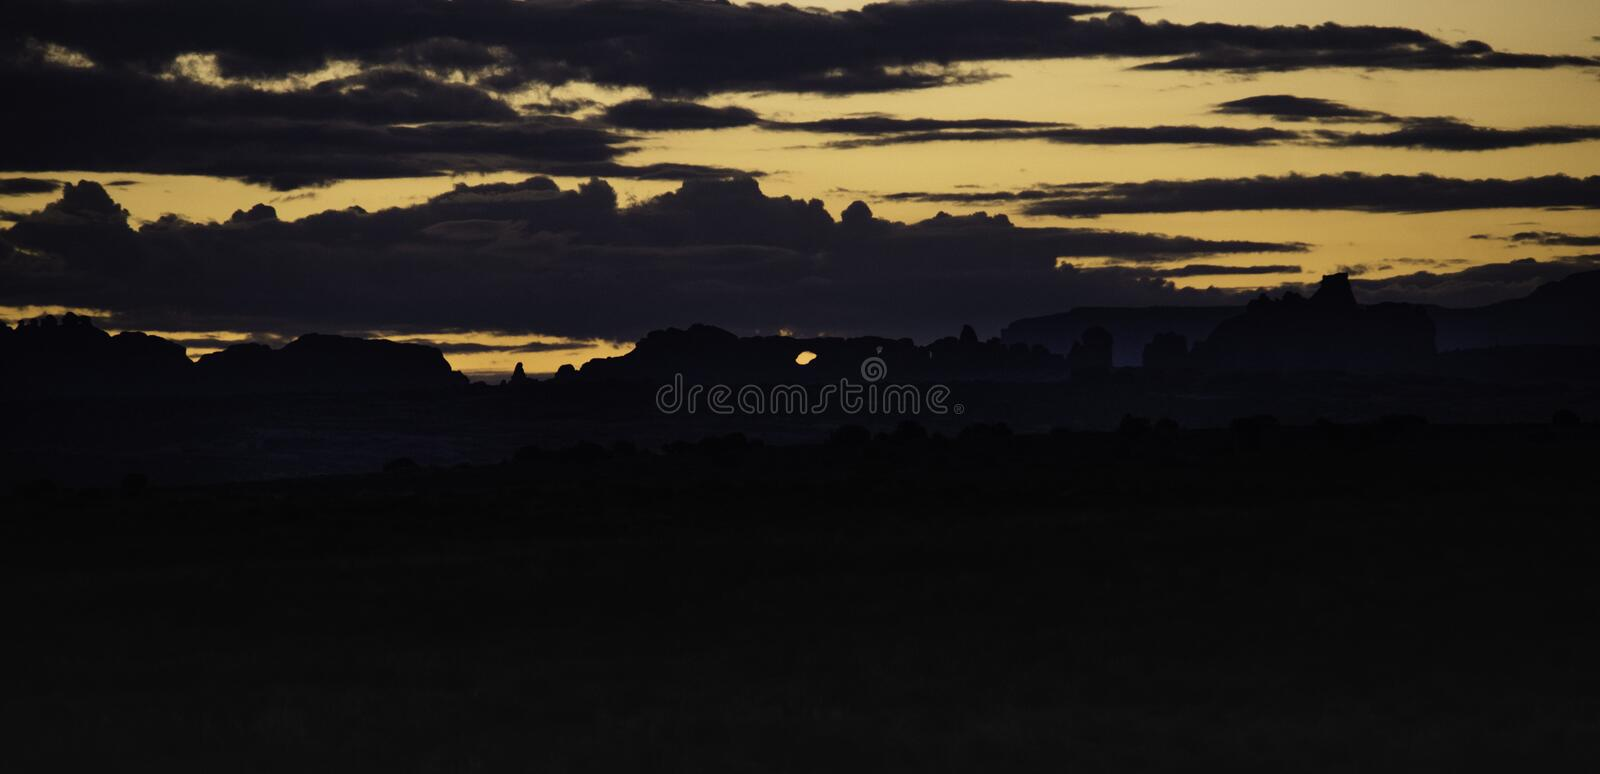 Arches National Park at sunrise royalty free stock image